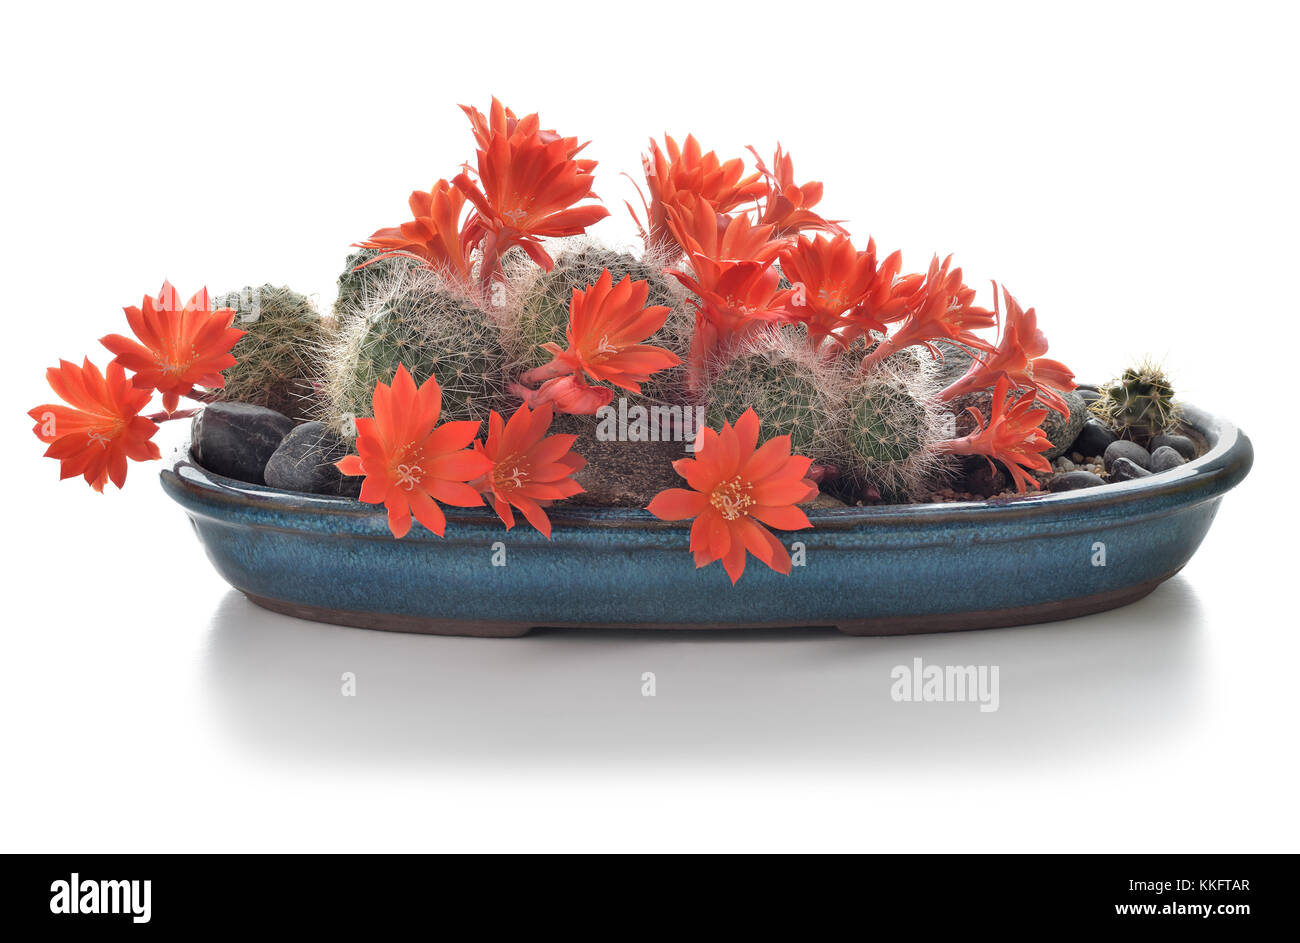 Blooming cactus houseplant isolated on white background. Cactus in flowers in a pot. Composition of succulents. - Stock Image